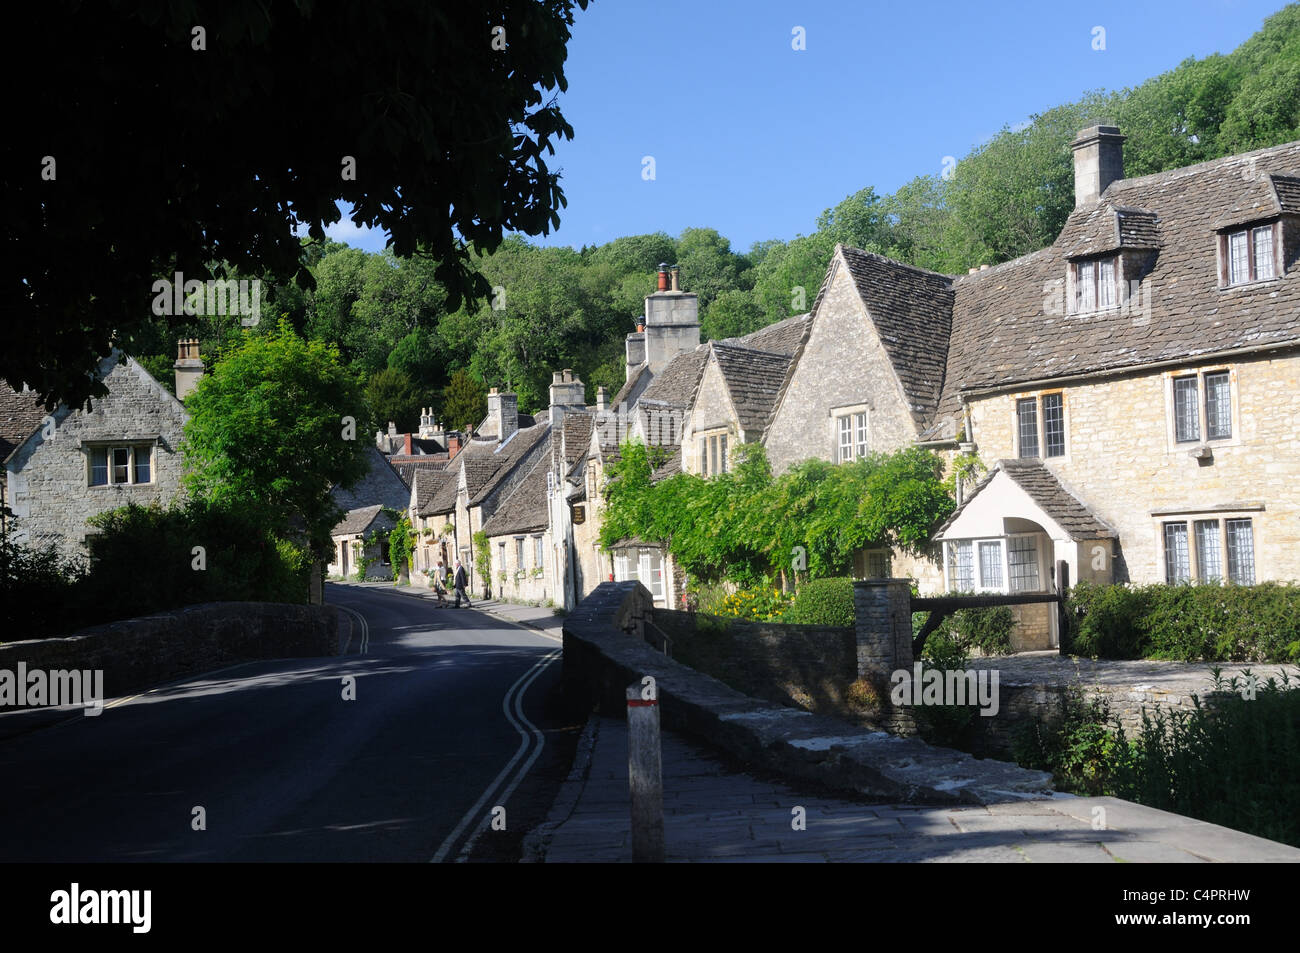 The Town Bridge and Water Street, in the picturesque village of Castle Combe, Wiltshire, England - Stock Image